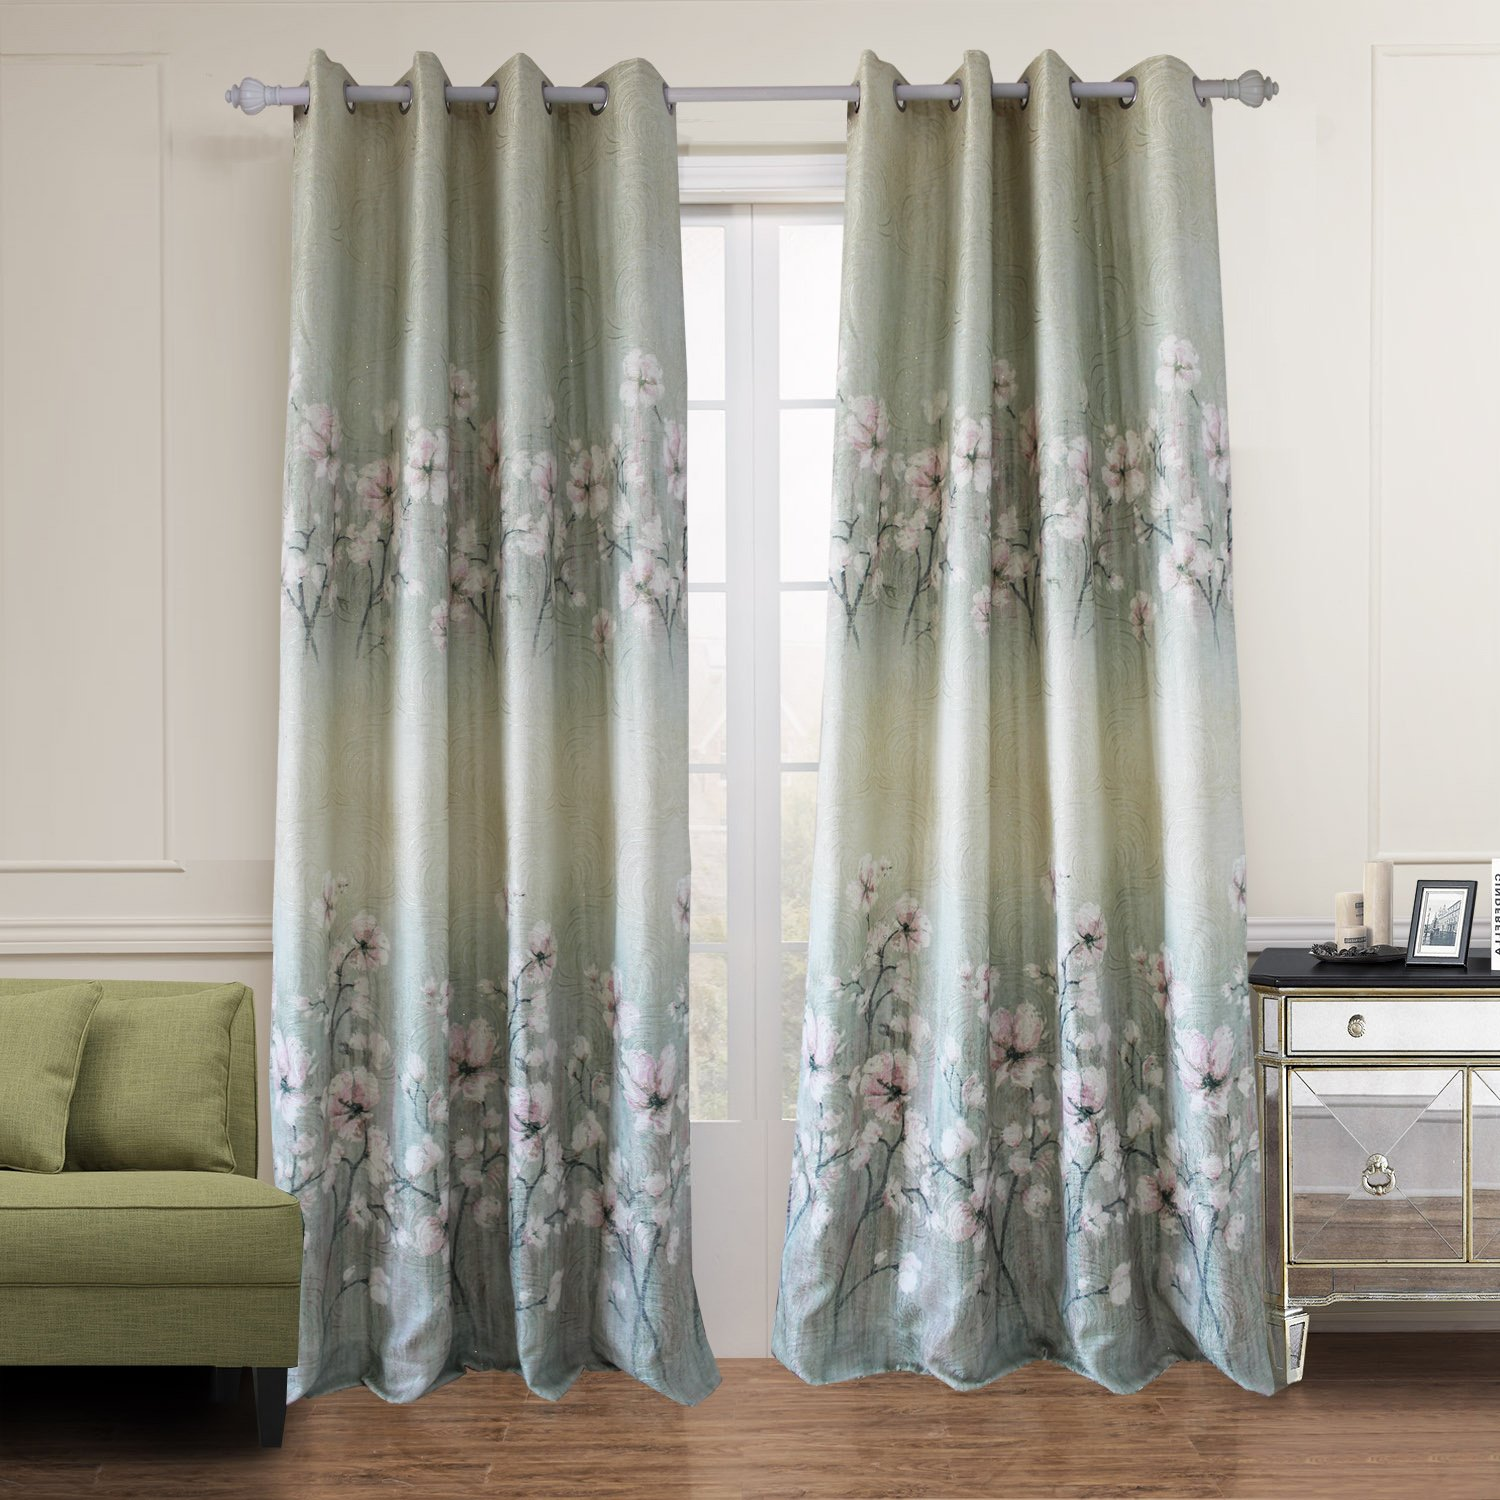 Amazon Anady Top Gold Lurex Greenpink Flower Curtains Drapes